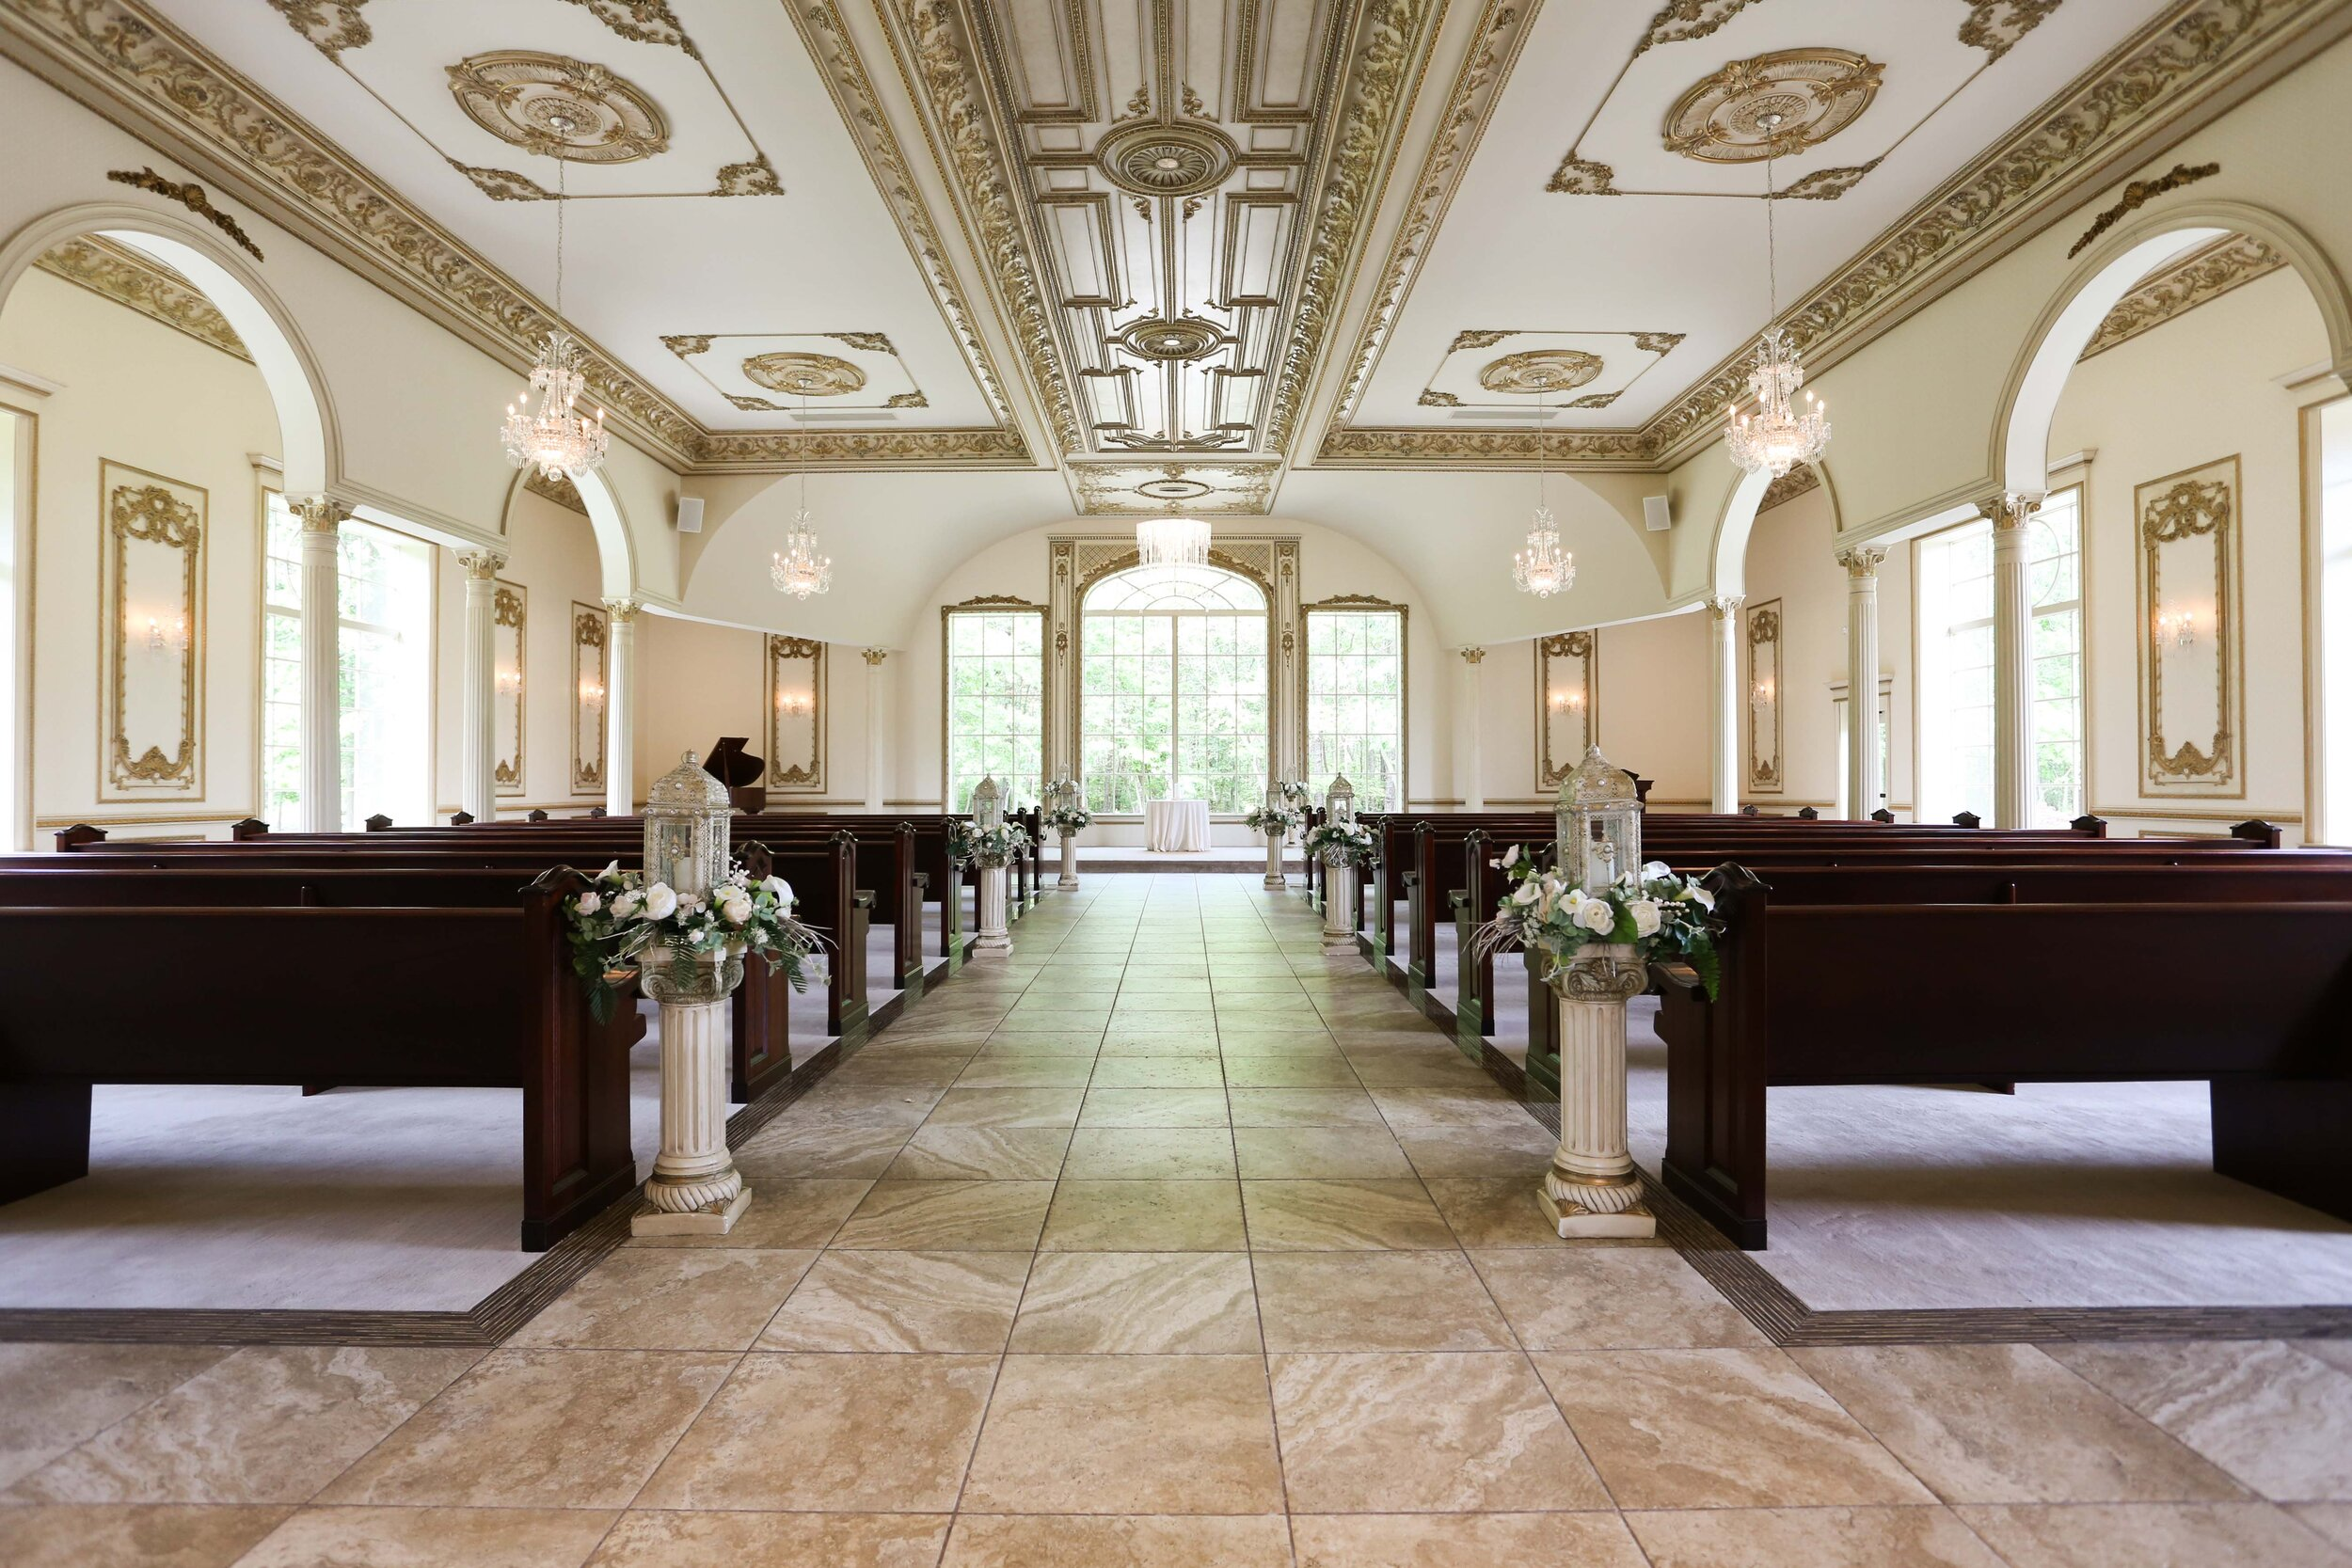 LightMaster-Studios-wedding-chapel-at-the-brigalia-with-floral-arrangements-white-flowers-on-chapel-pews-Lo-Rez-0153.jpg